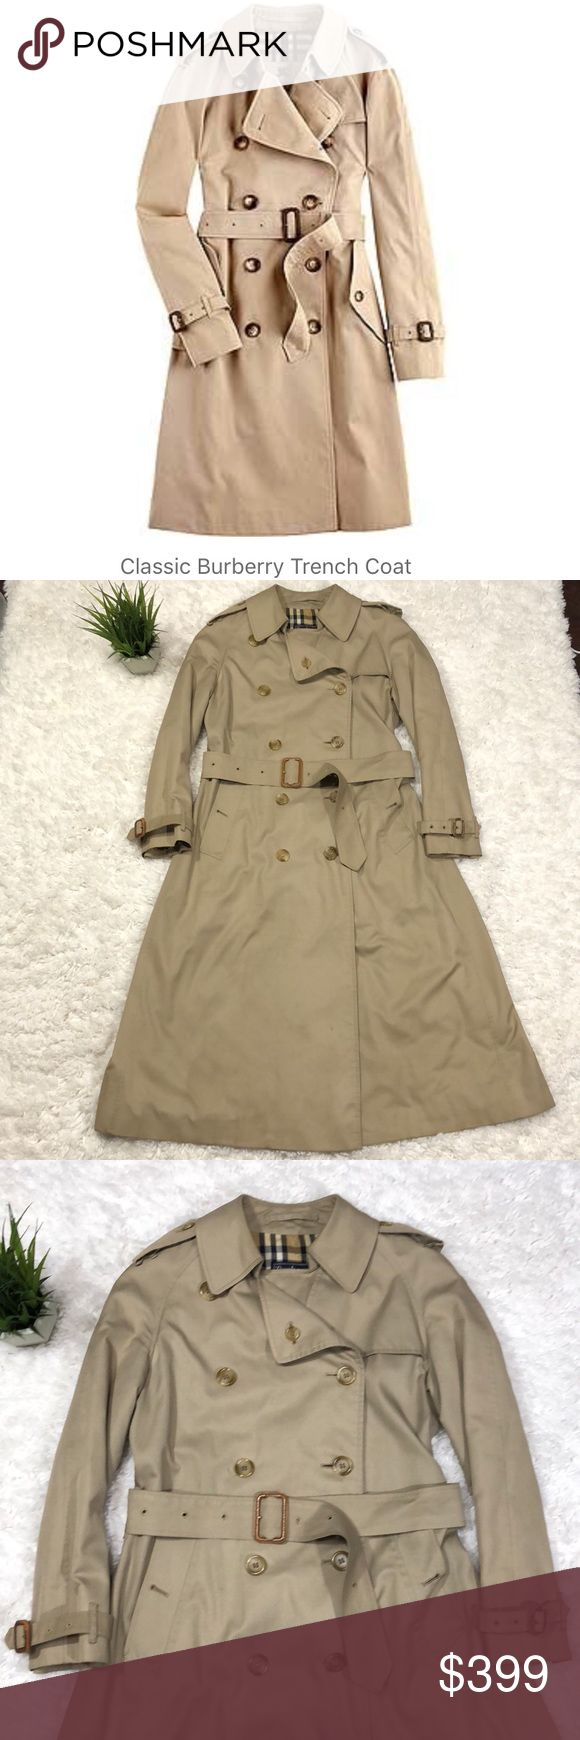 Burberry classic trench coat Beautiful classic Burberry plaid lined khaki trench coat. All buttons intact. Minor wear as shown in last pic of the belt buckles on sleeves. Length is 45 inches. Over all condition is very good. Burberry Jackets & Coats Trench Coats